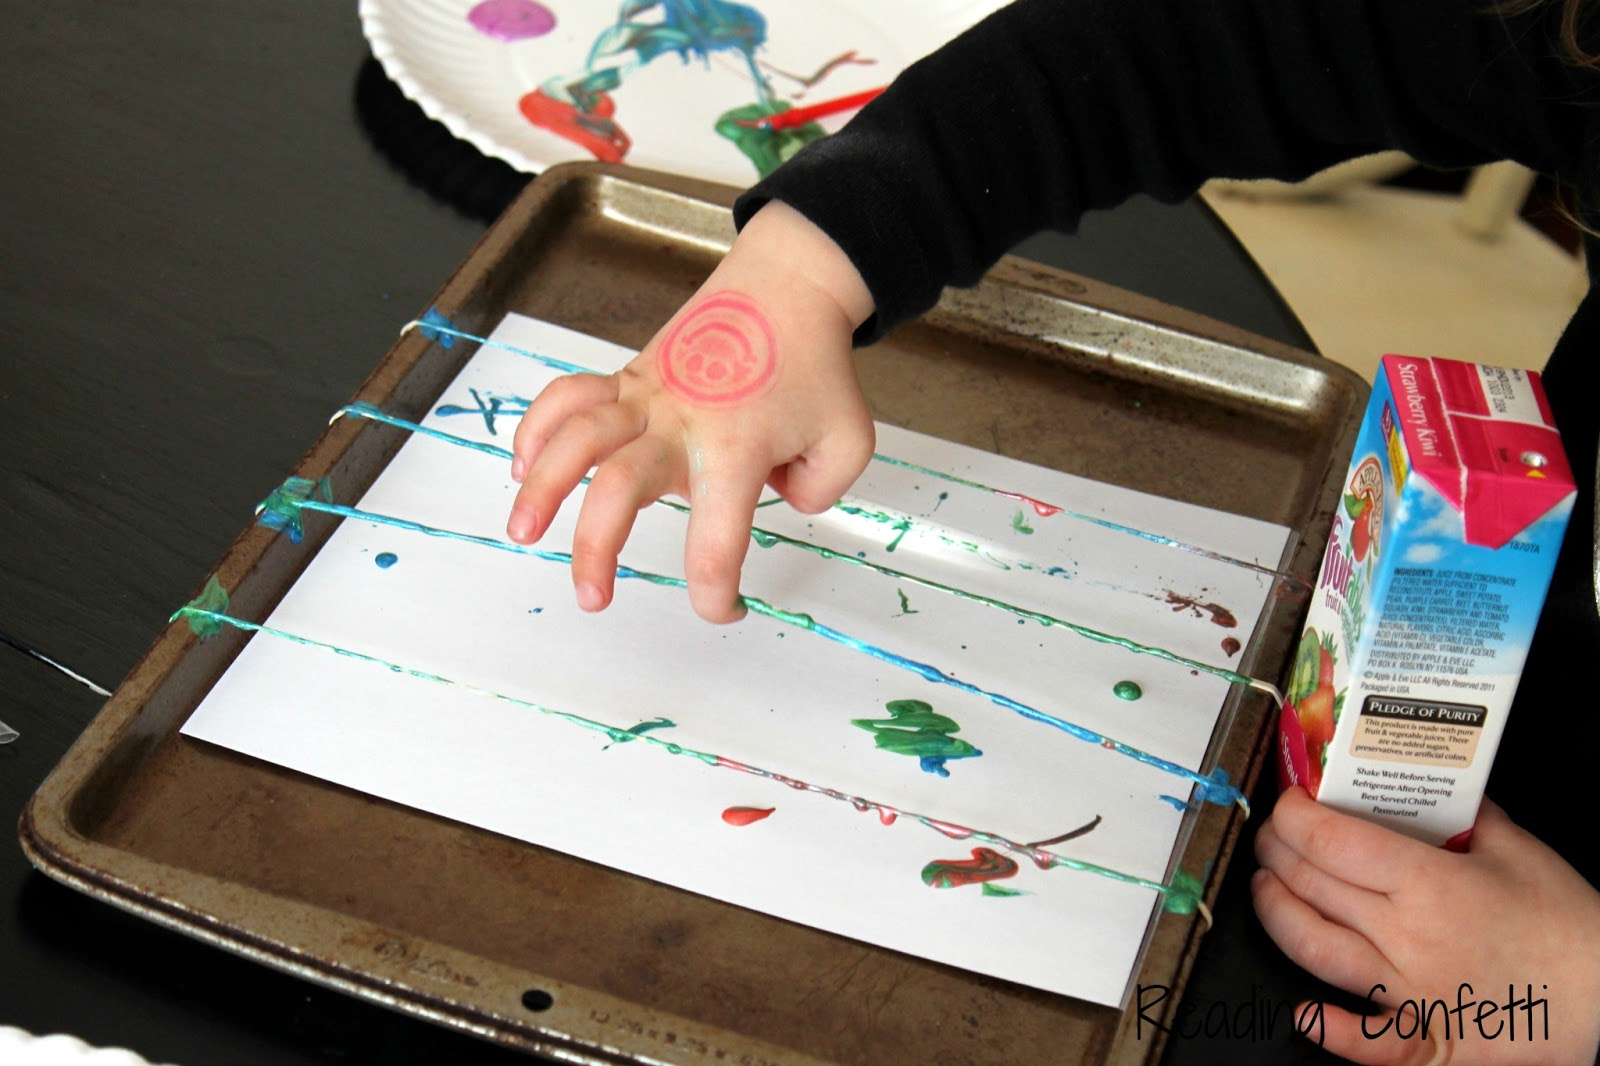 easy art and craft ideas for kids - rubberband flick painting